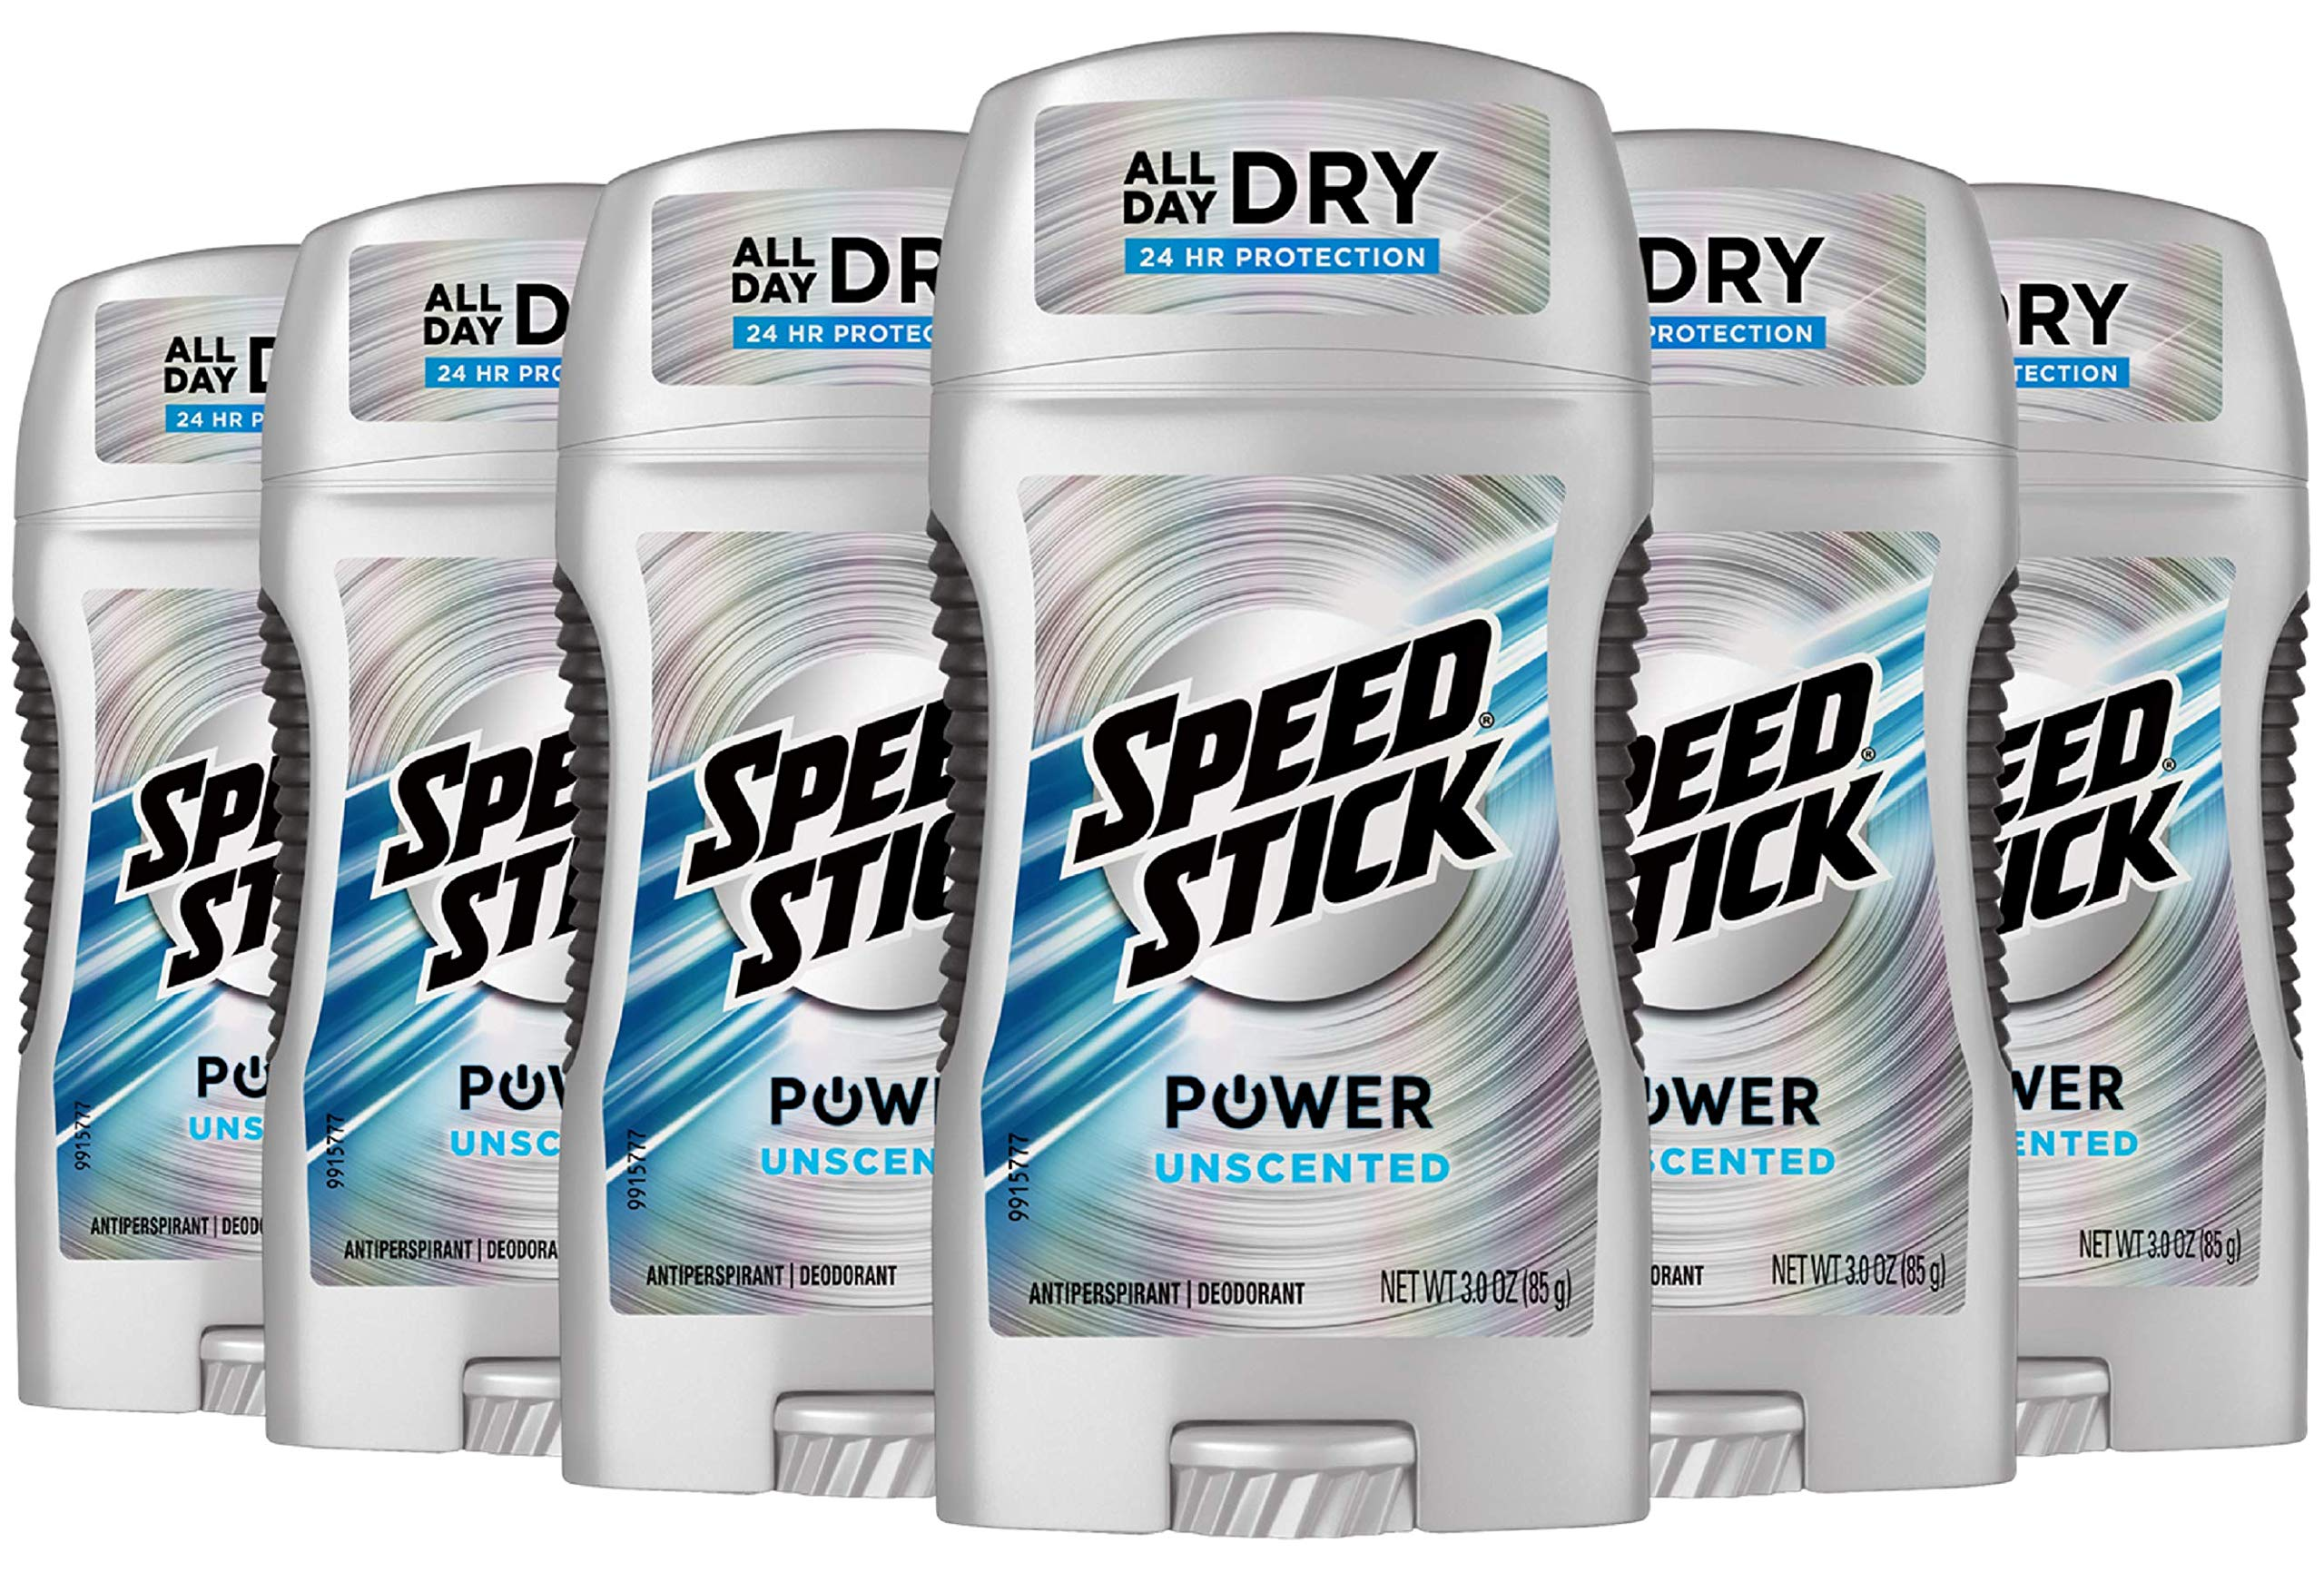 Speed Stick Power Antiperspirant Deodorant for Men, Unscented - 3 Ounce (Pack of 6) by Mennen